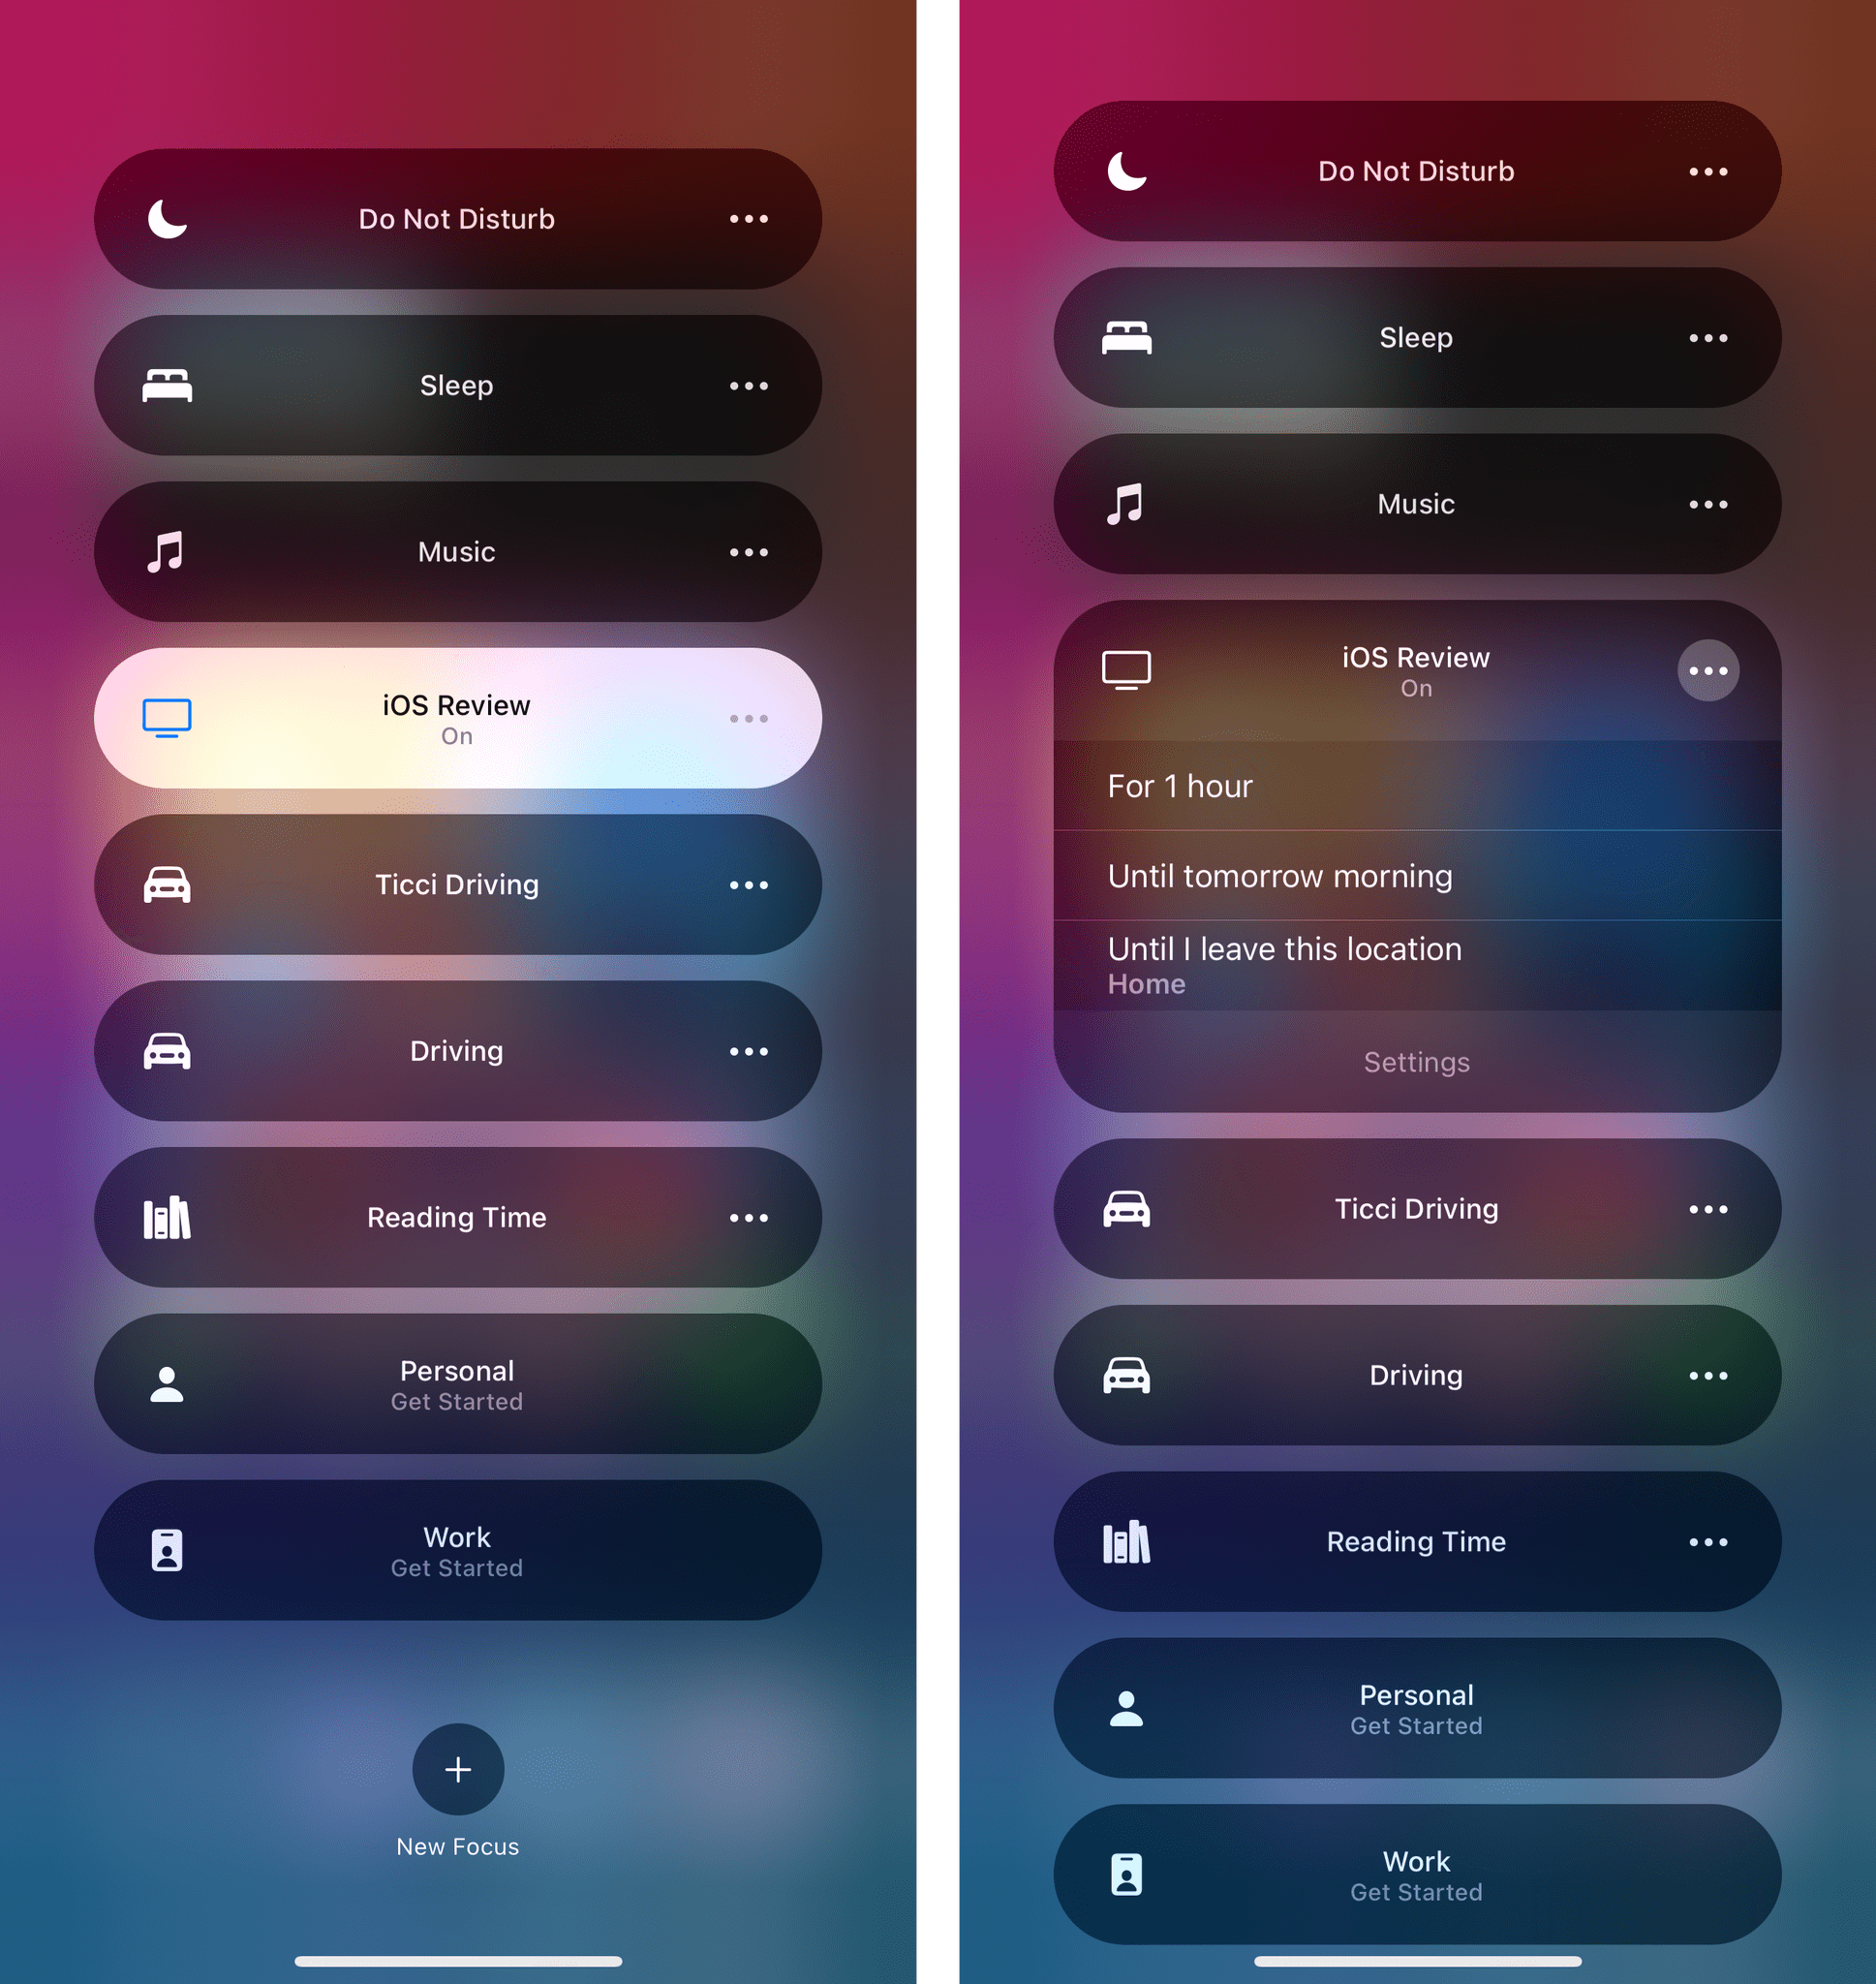 As with Do Not Disturb, you'll find toggles in Control Center to enable Focus for one hour, until later in the day, or until you leave the current location.